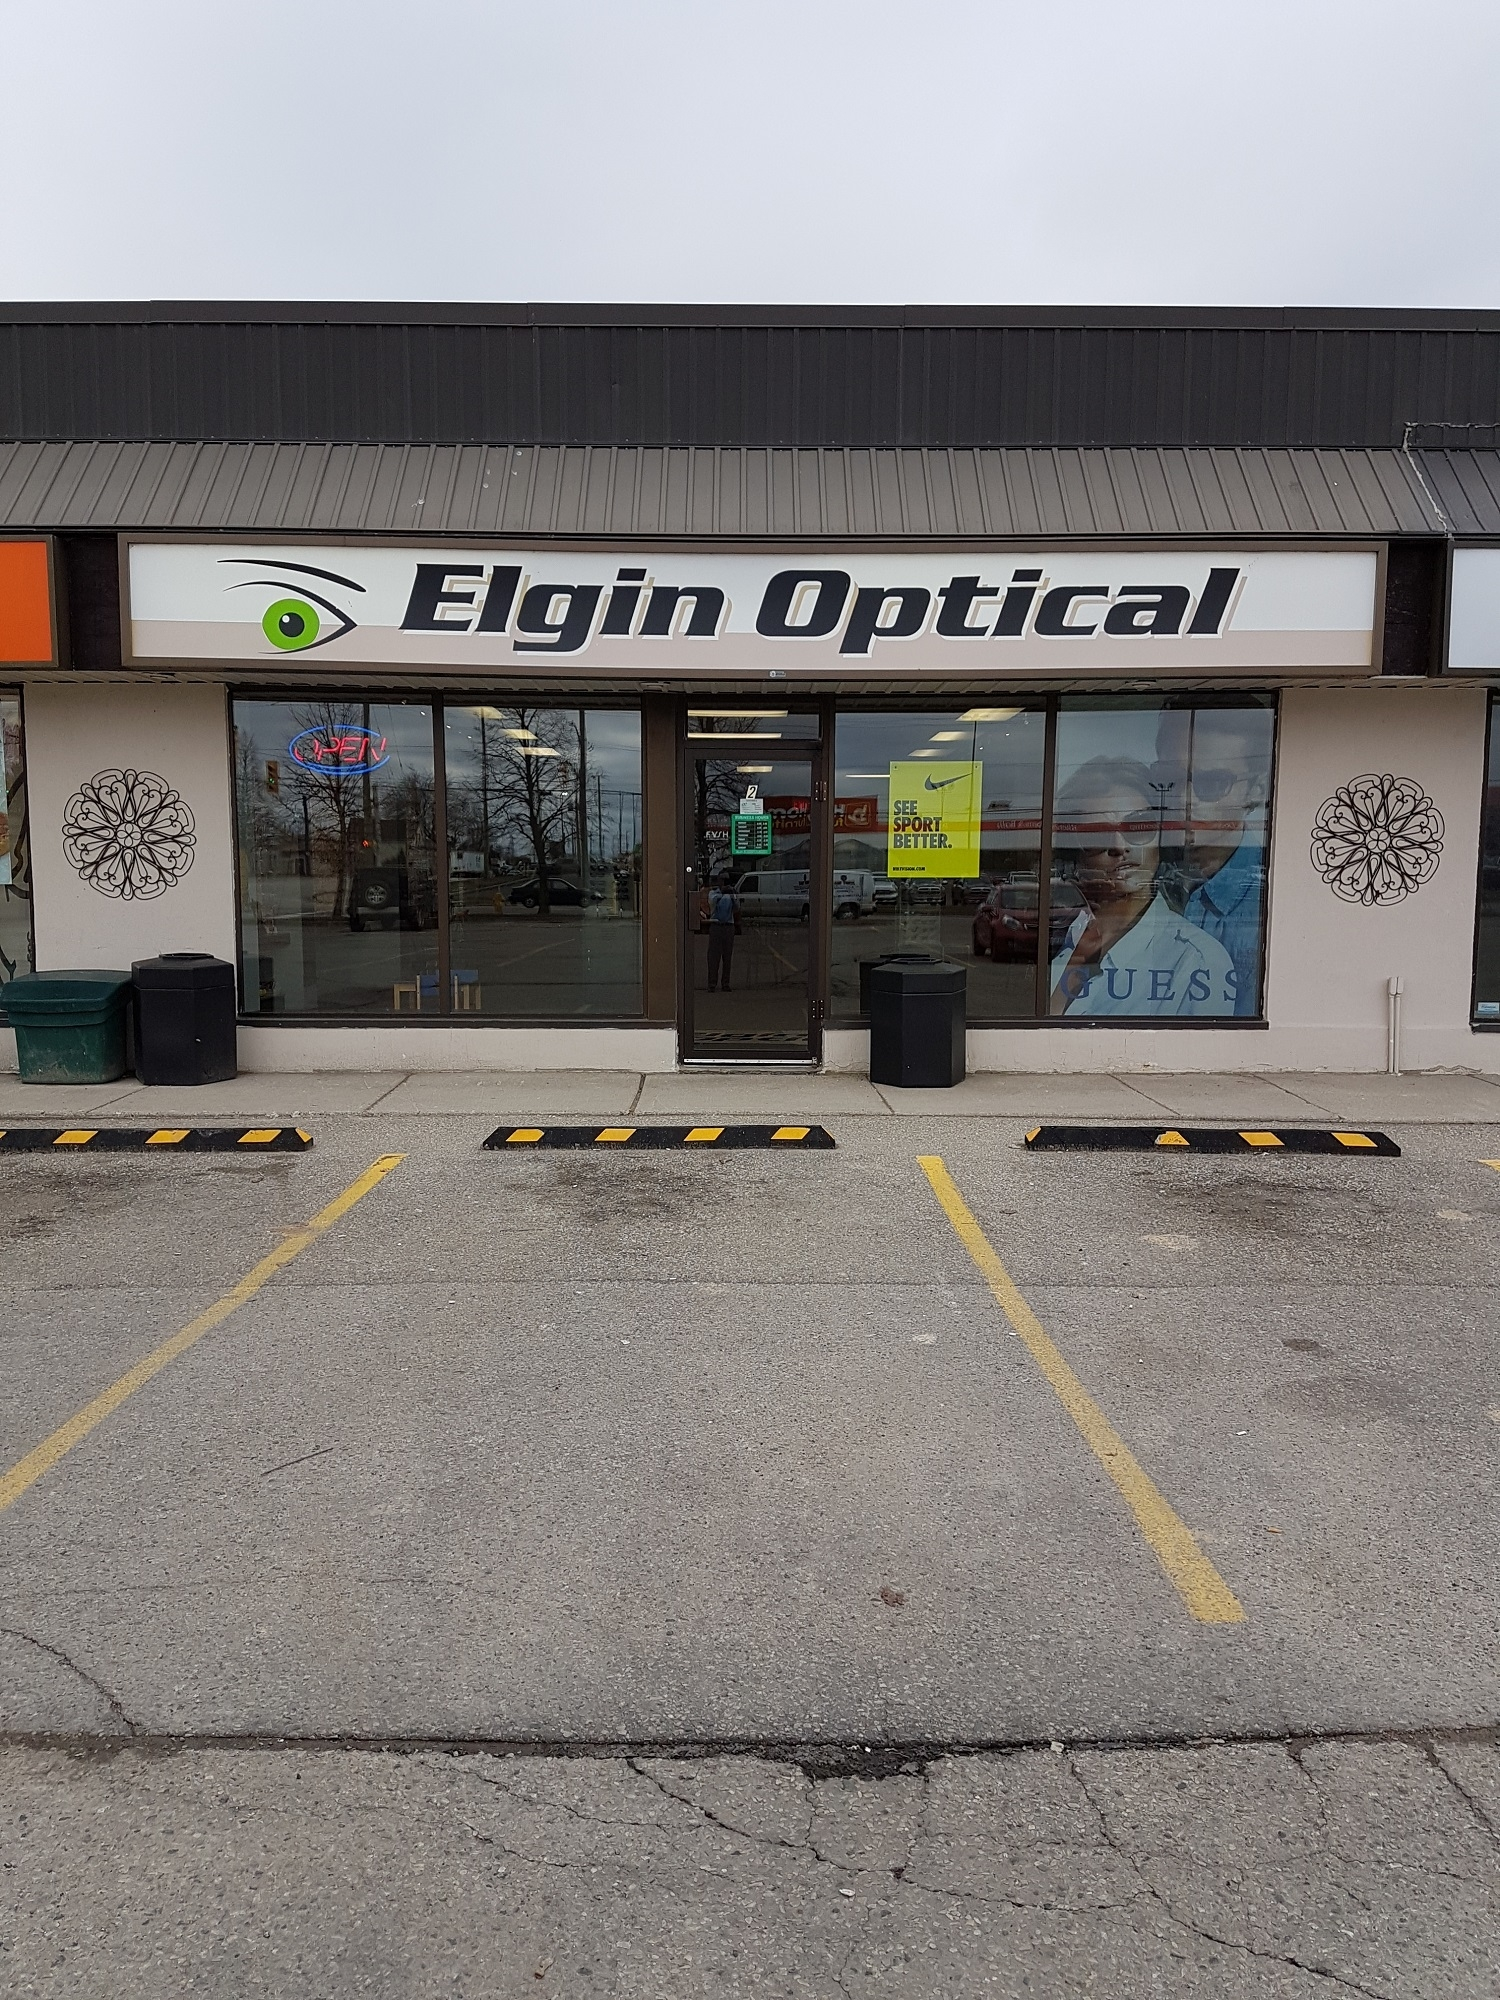 Elgin Optical Ltd